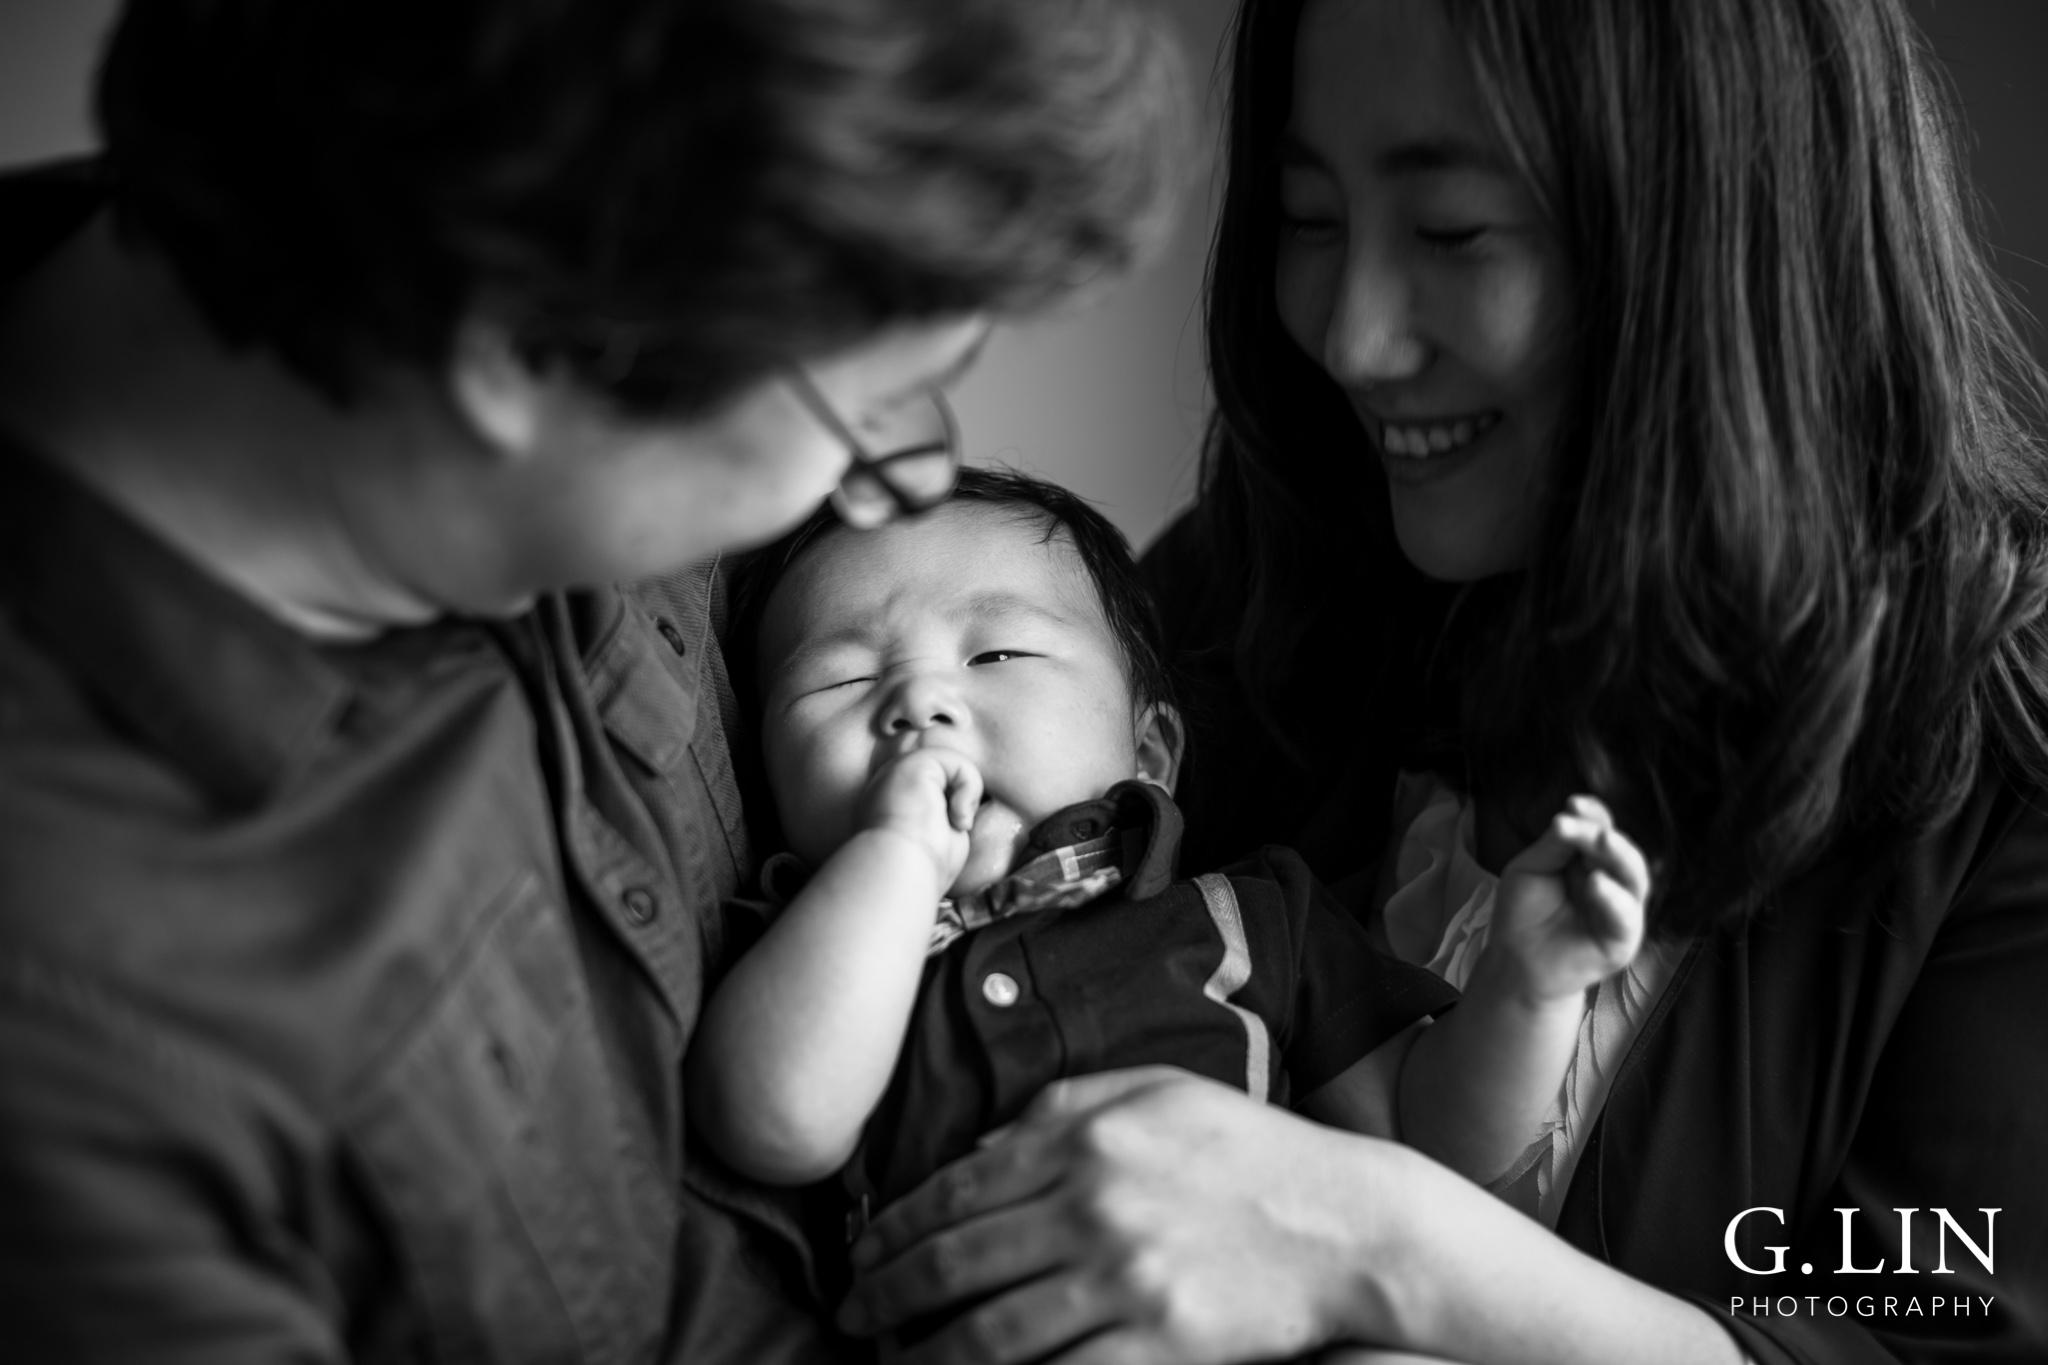 Raleigh Family Photographer | G. Lin Photography | Baby yawning in parents arms, photo in black and white